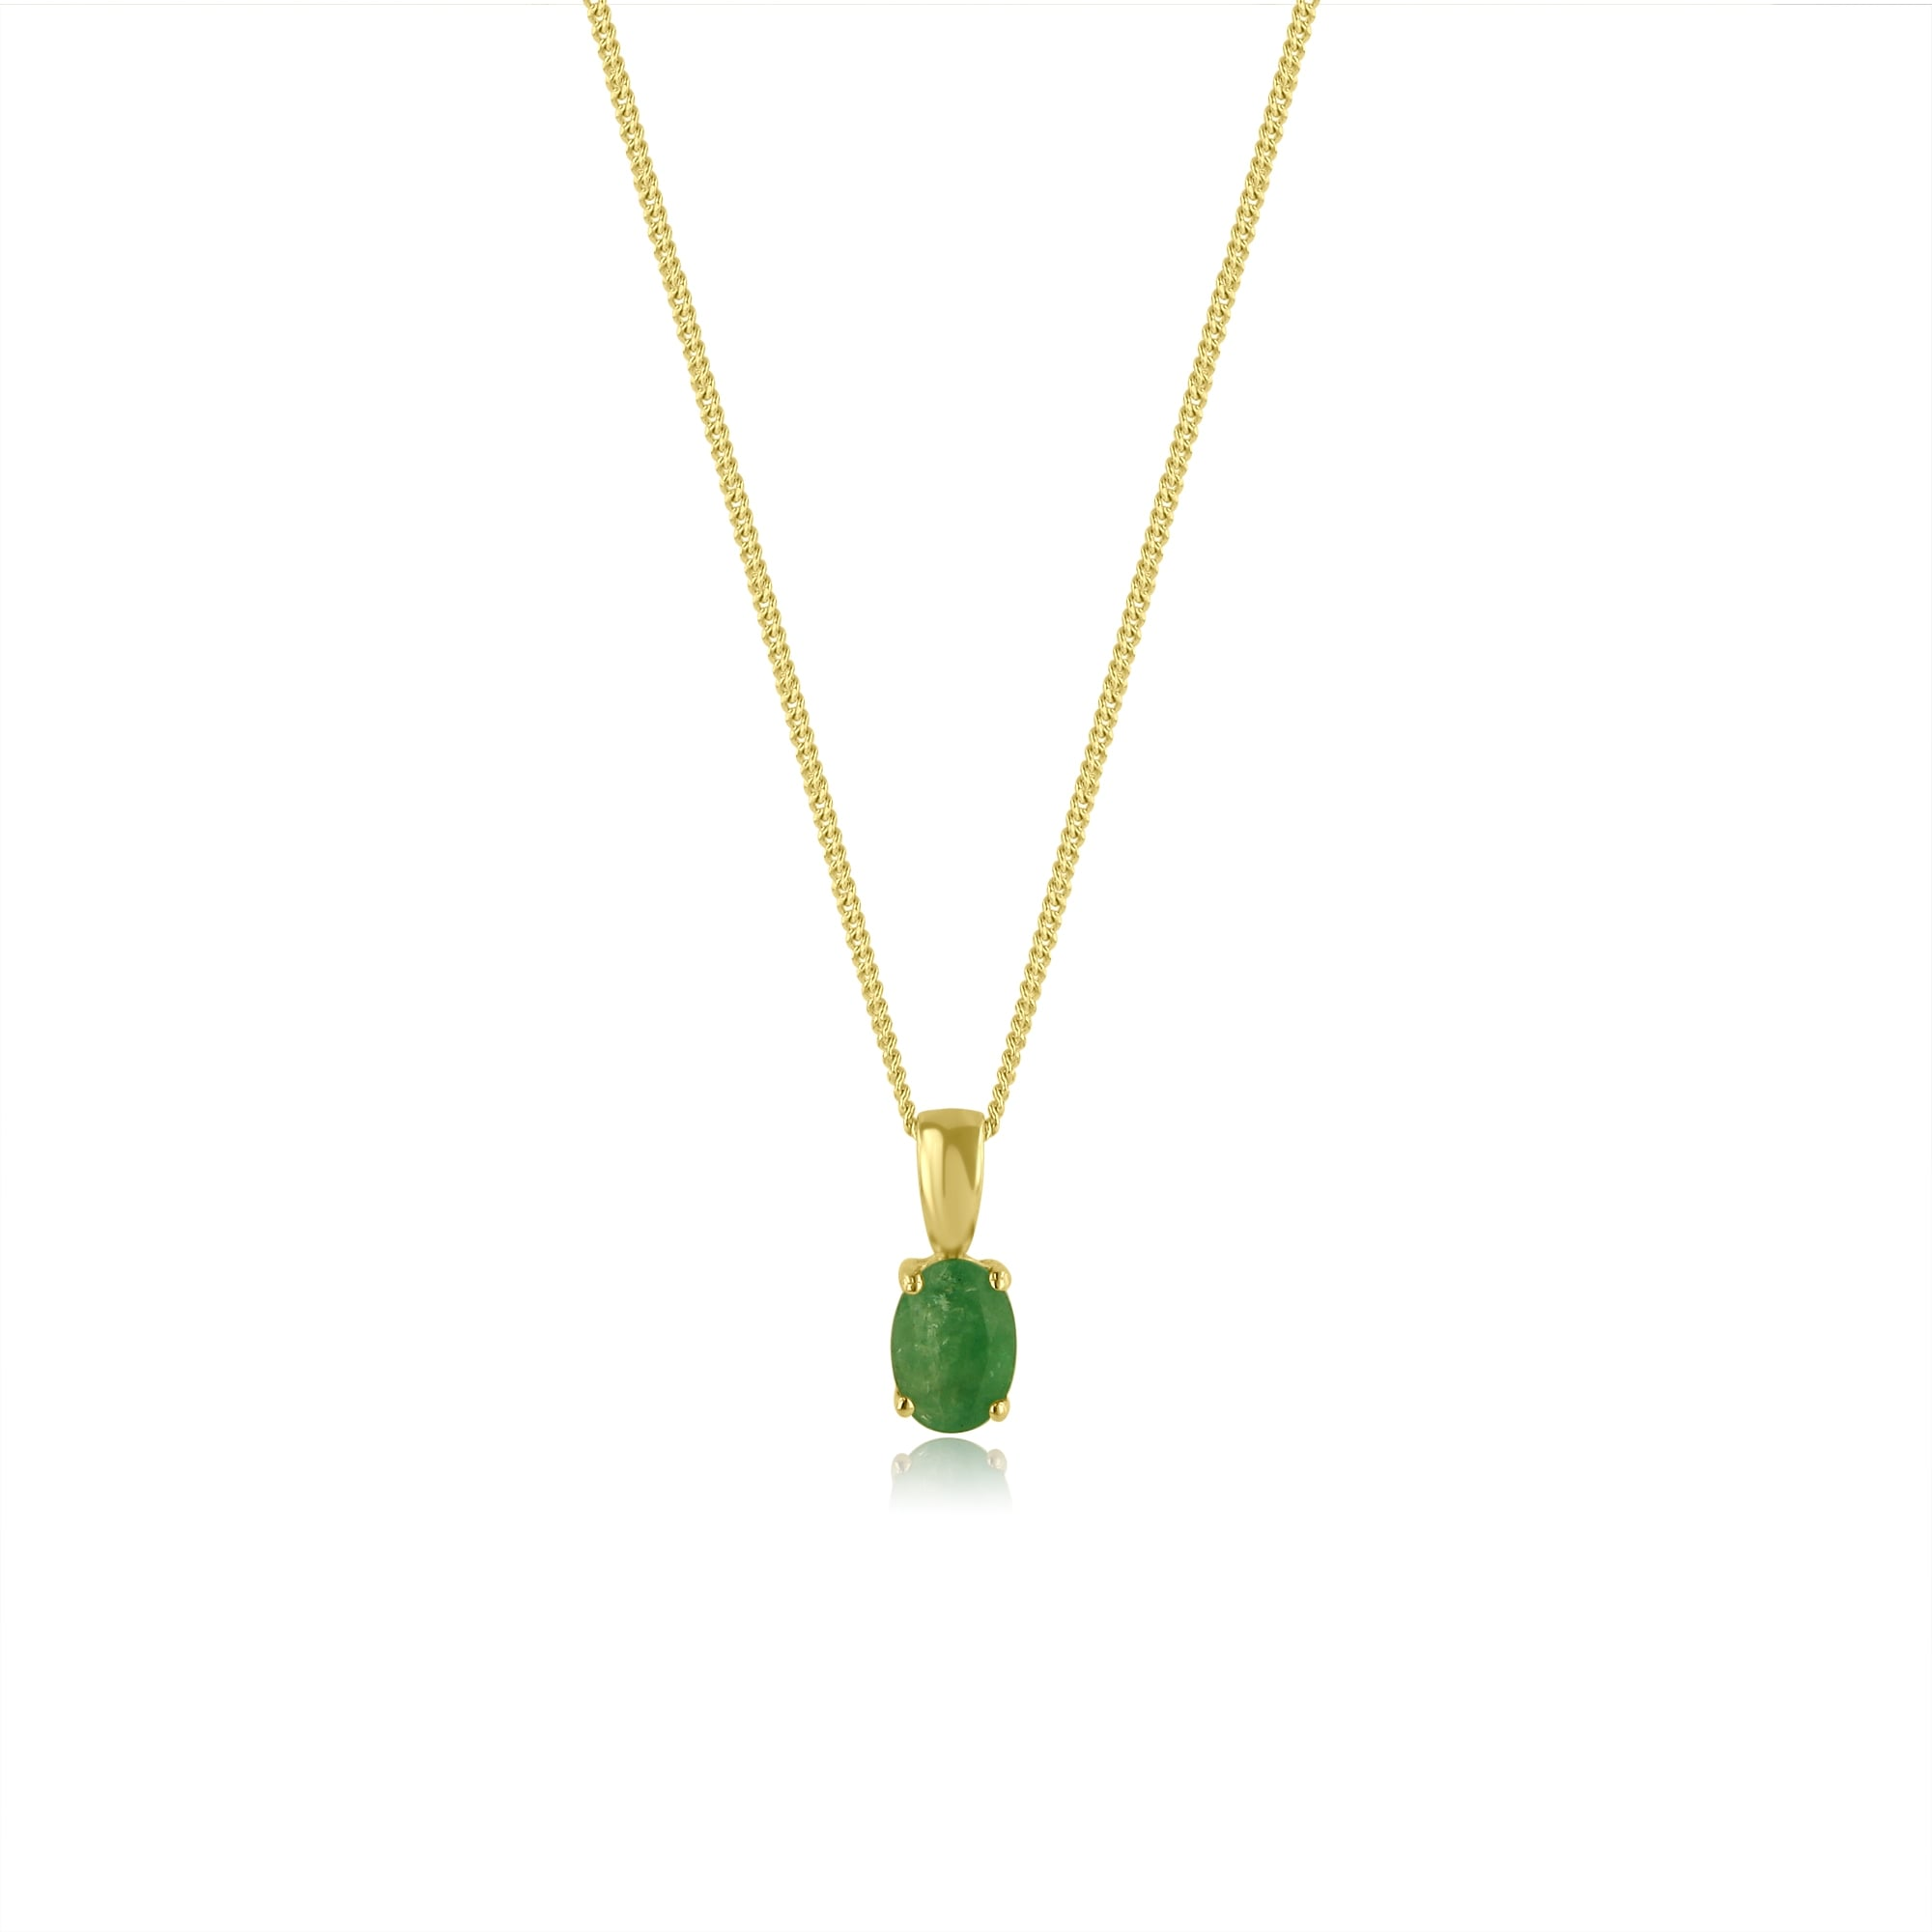 Oval Shape Emerald Necklace In 9ct Yellow Gold